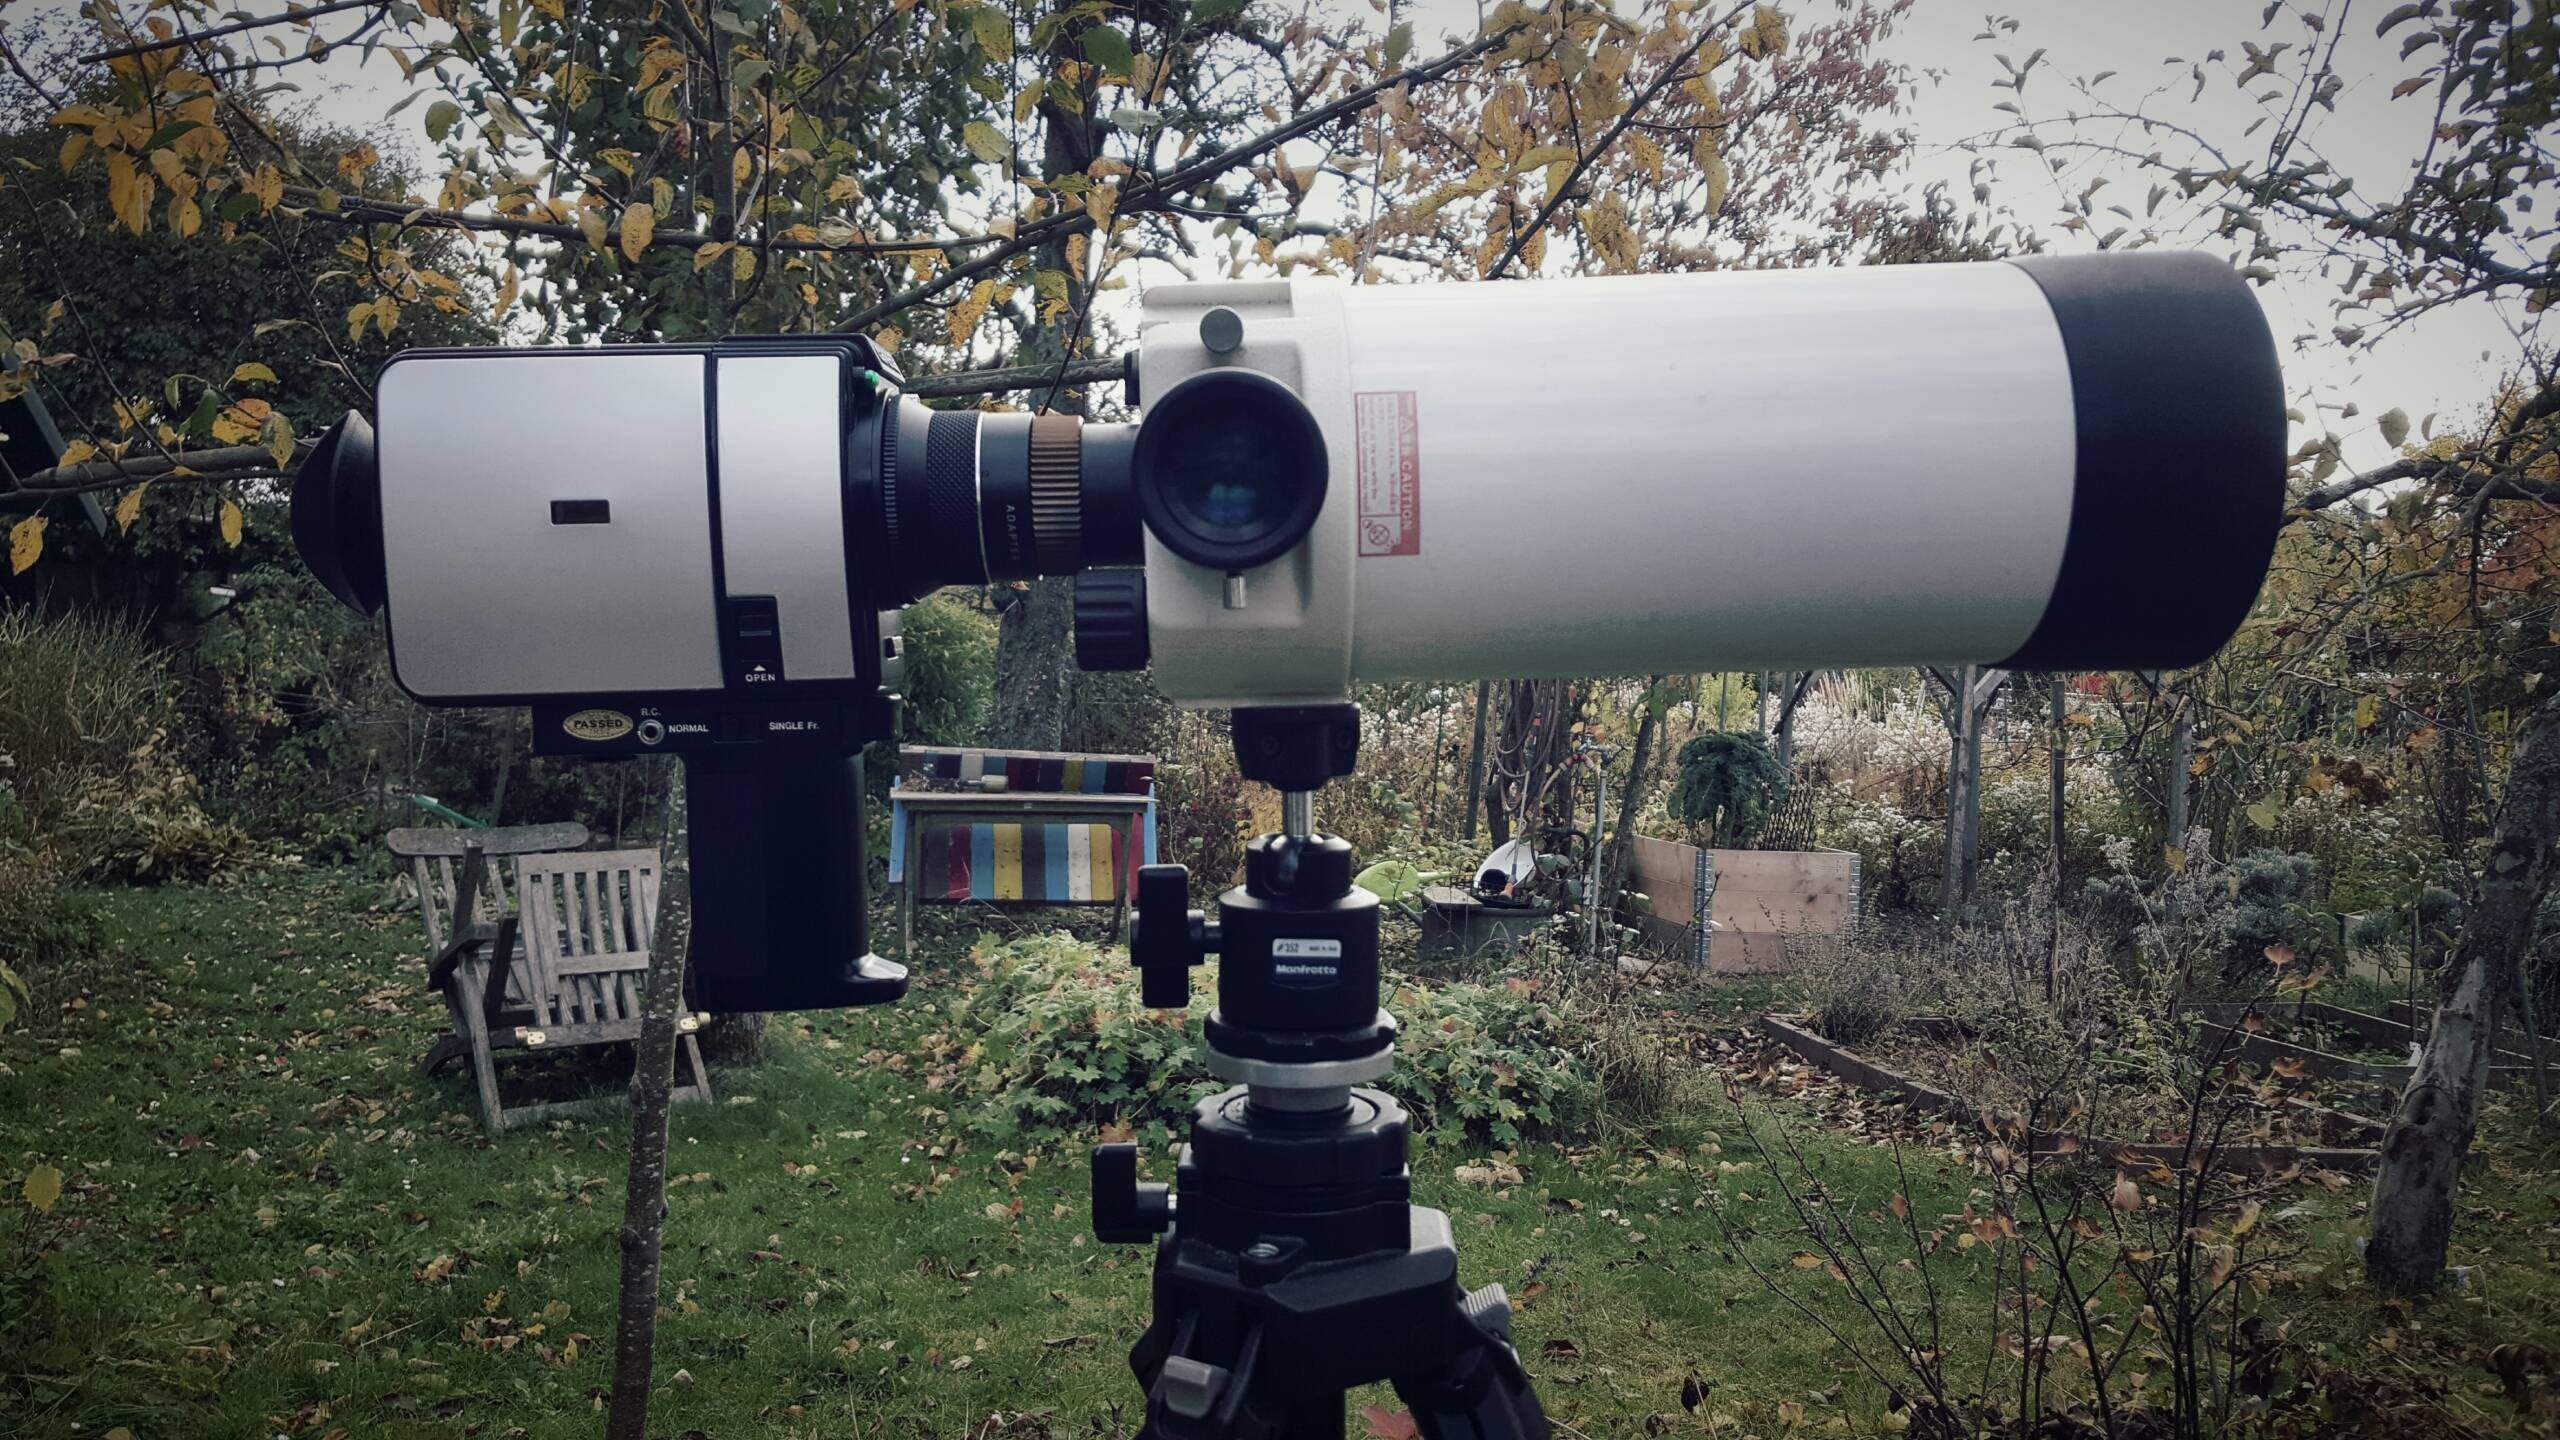 Extreme telephoto focal lengths for Super8 – a first attempt